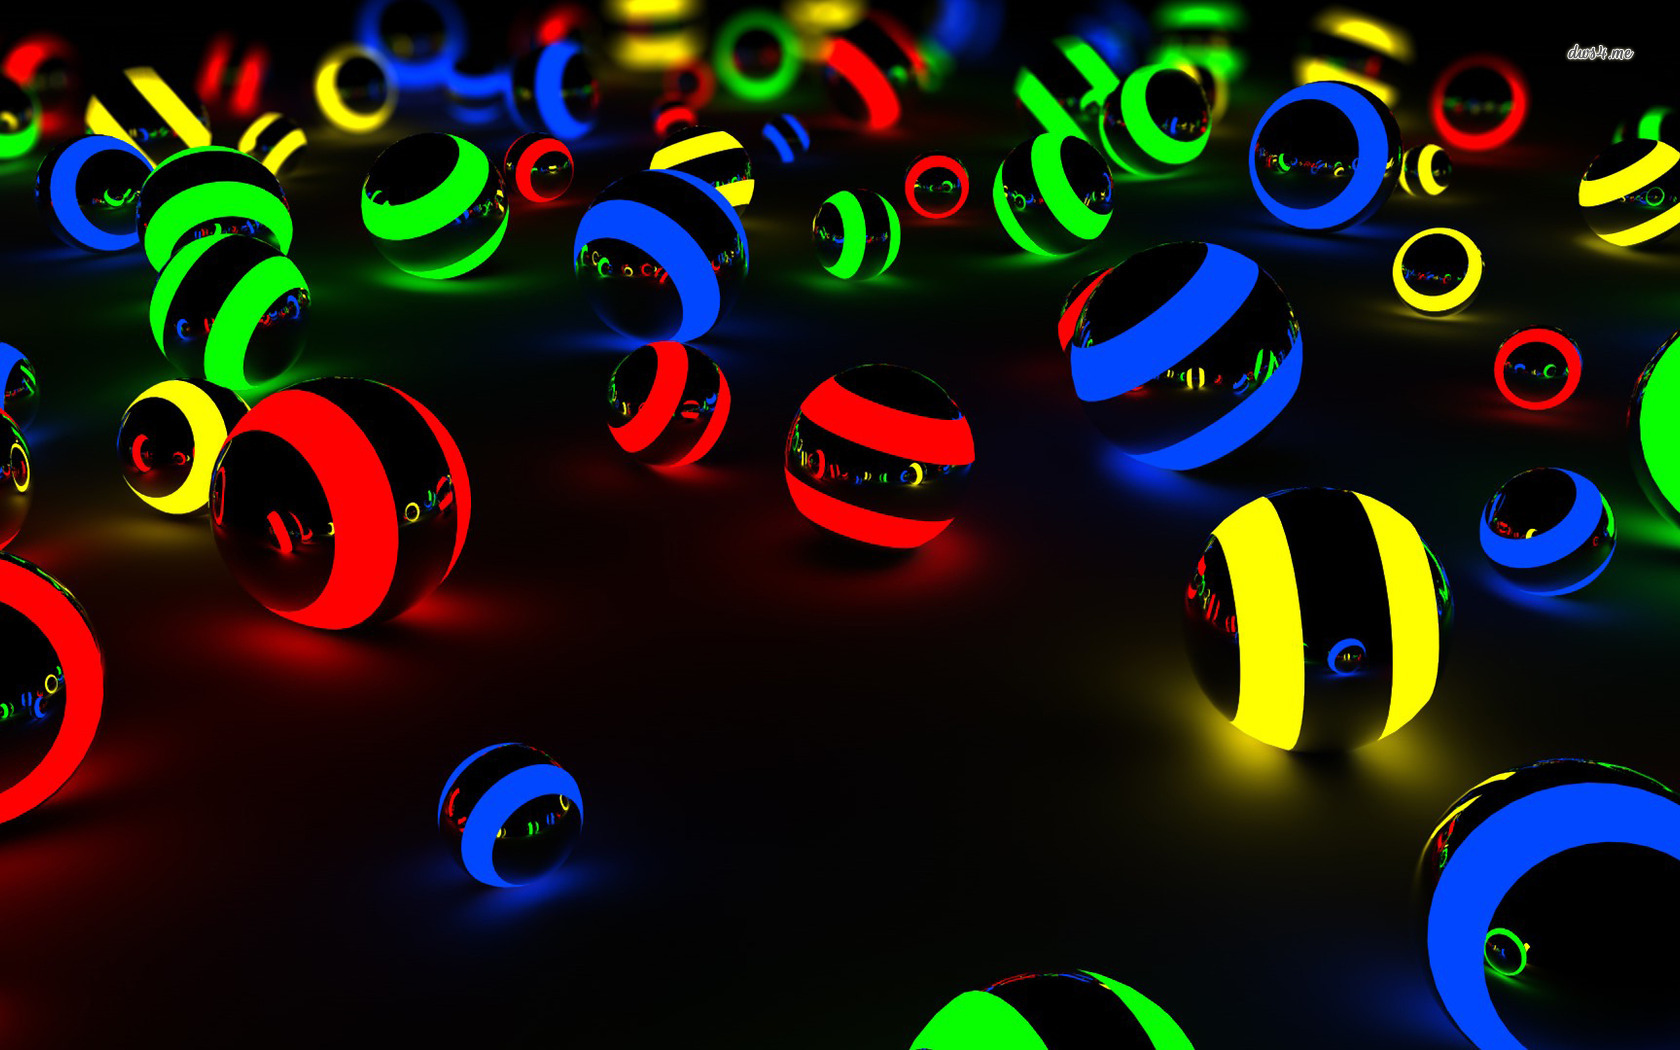 Cool 3d neon wallpapers rich image and wallpaper Free 3d